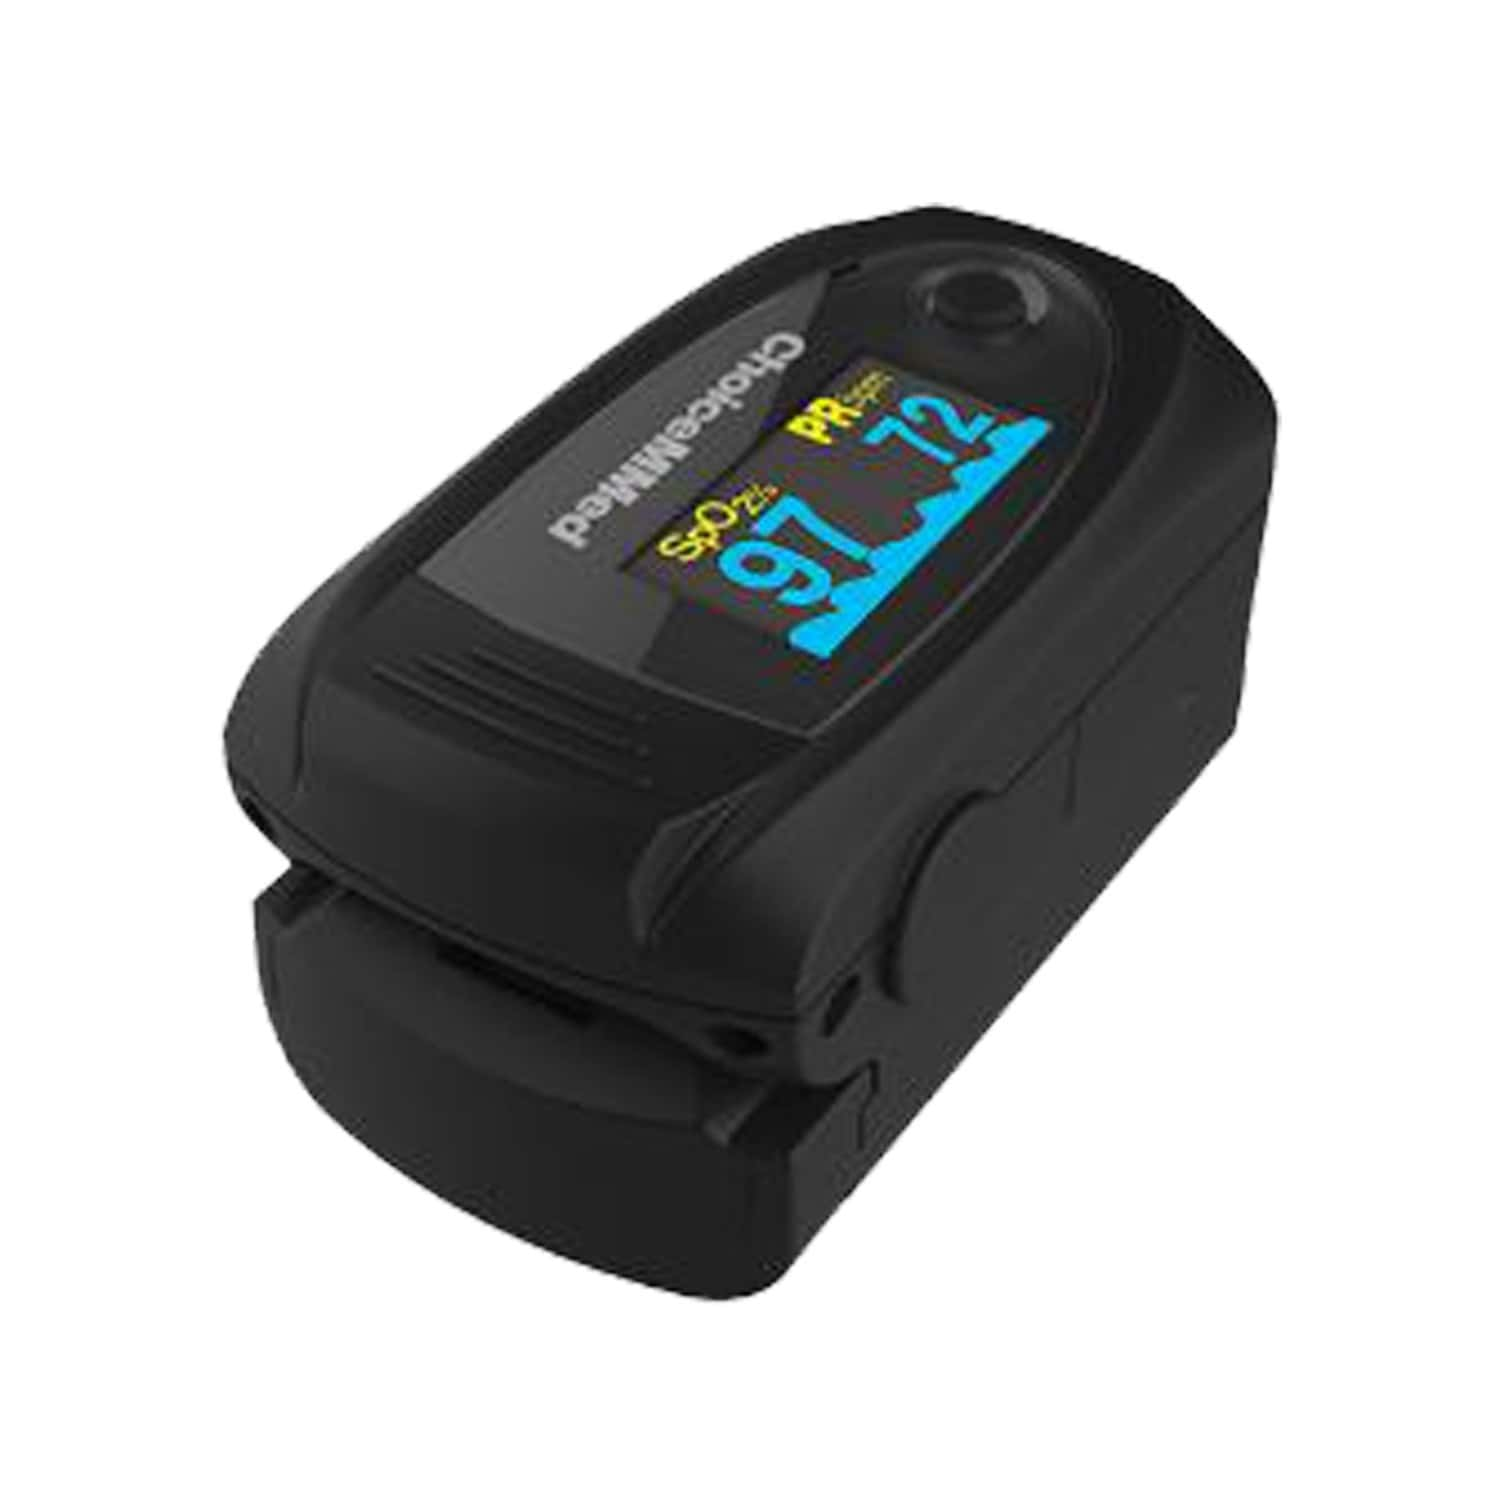 Choicemmed Unbreakable Md300c63 Oximeter